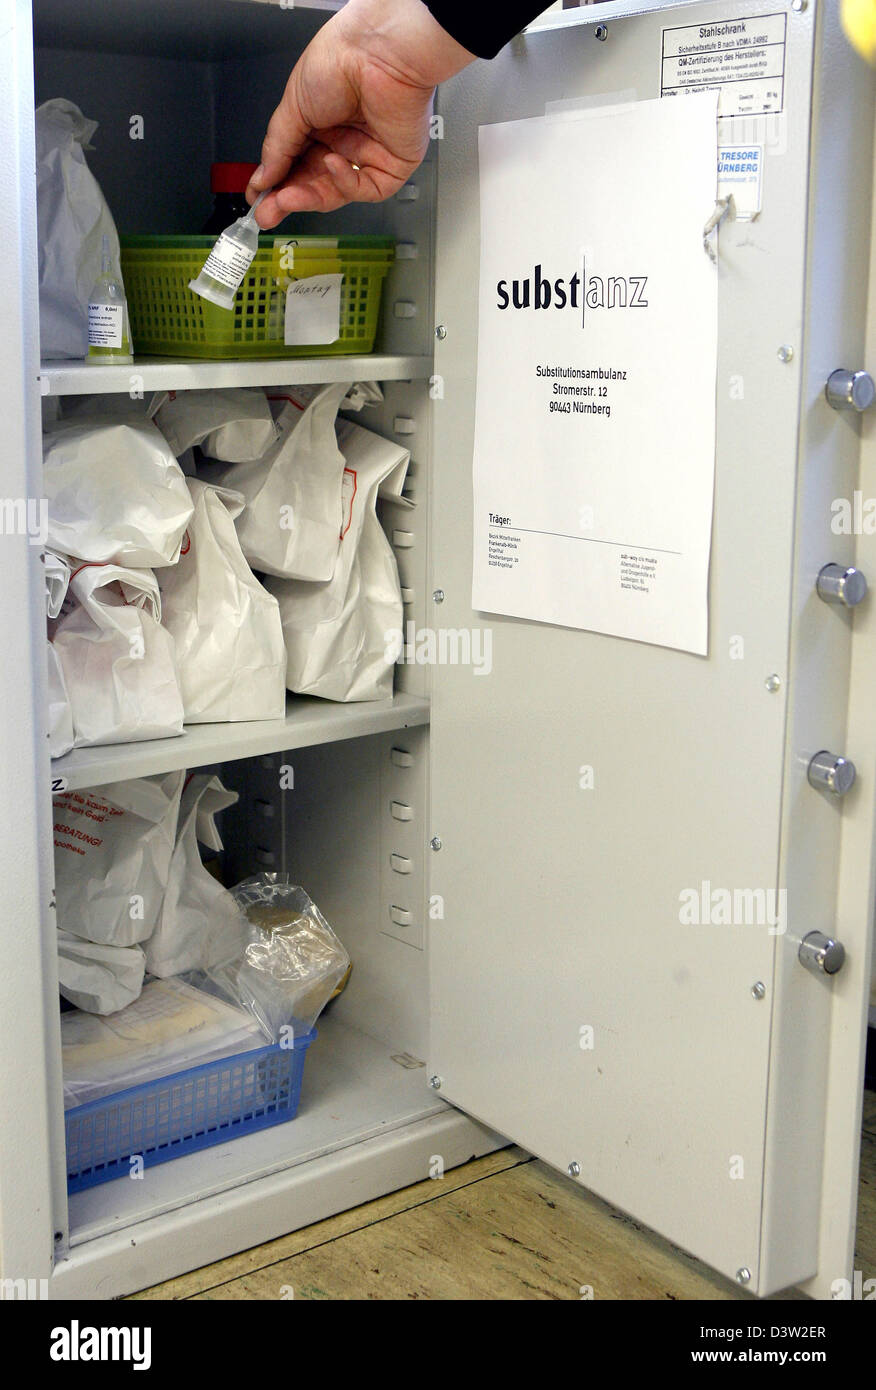 Substitutions such as methadone and polamidone are kept in a safe in the substitution clinic 'Substance' - Stock Image